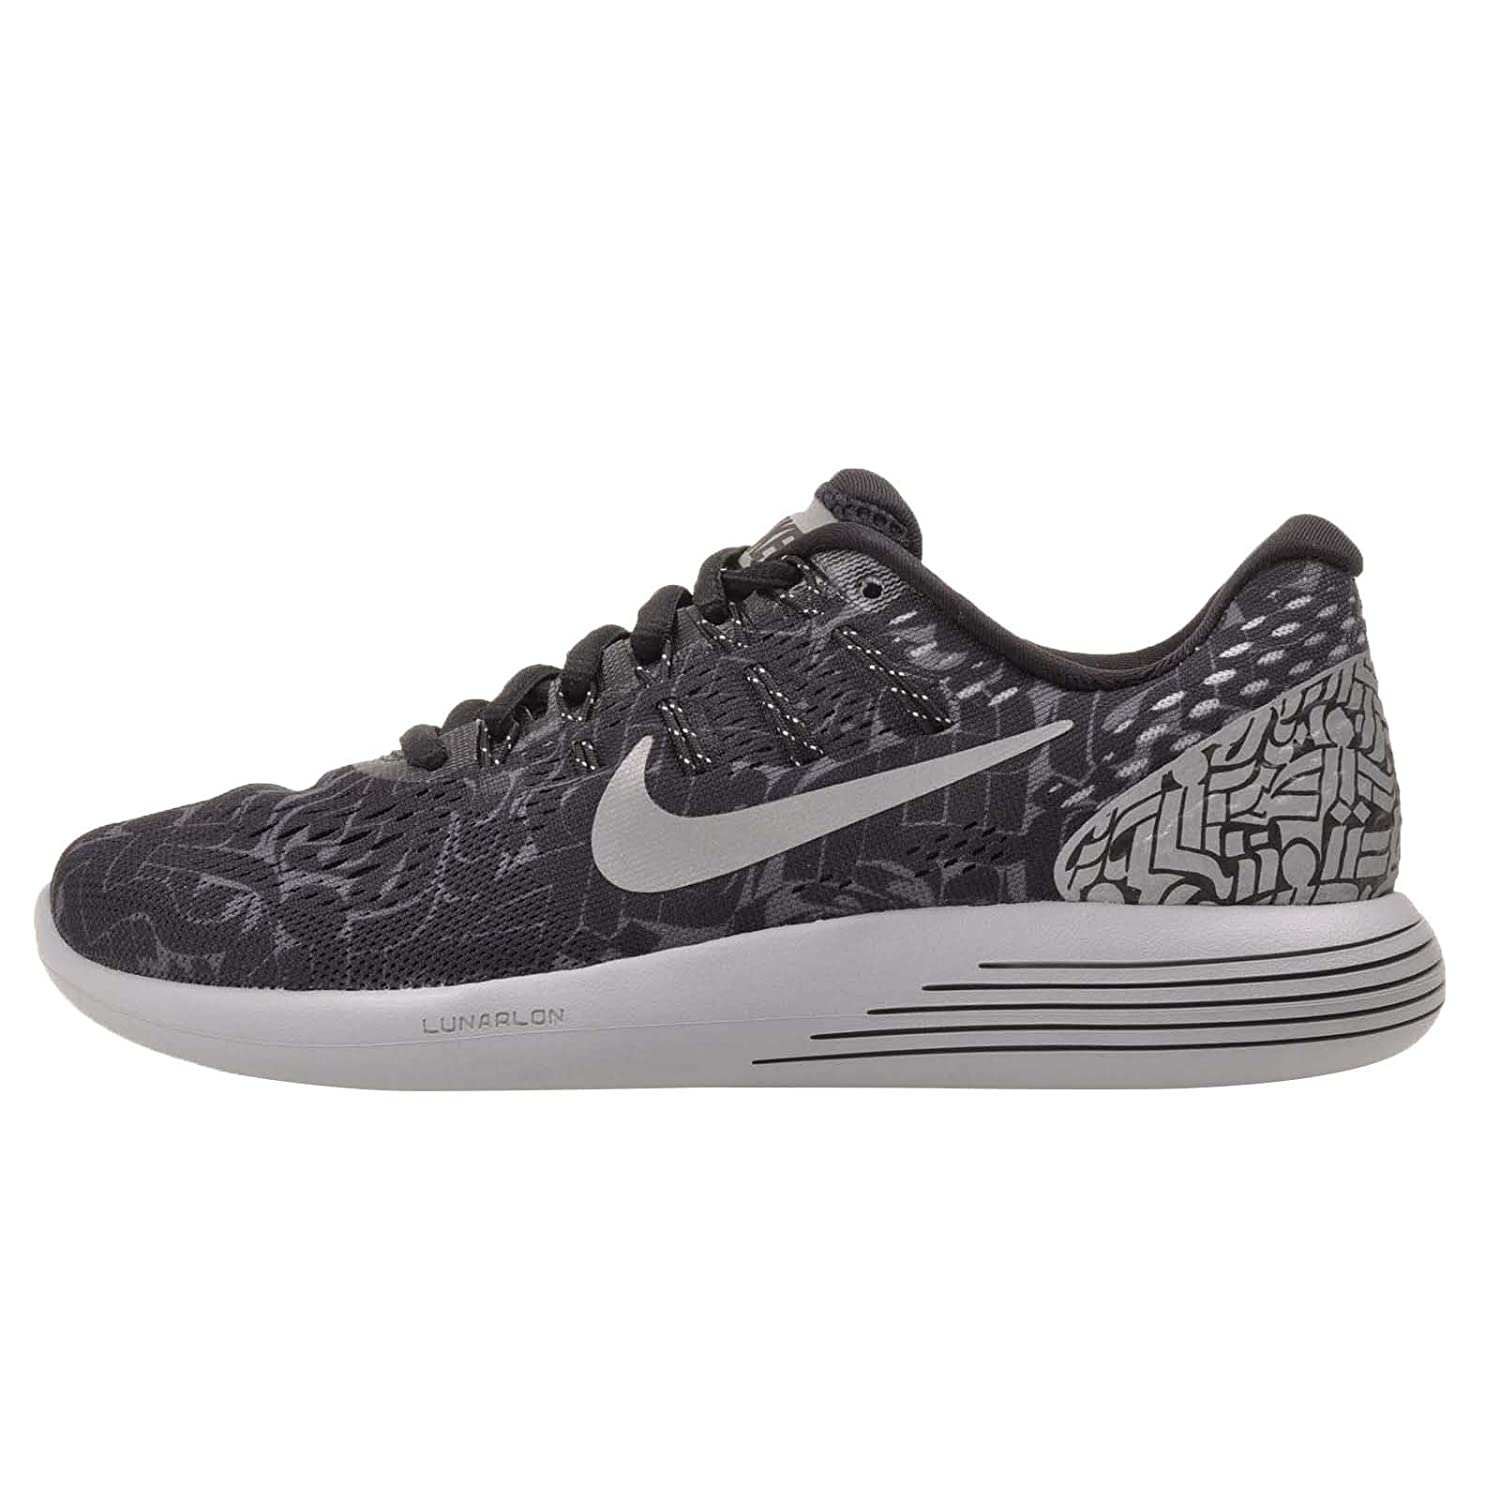 NIKE Women's Lunarglide 8 Running Shoe B071S1PT15 7 B(M) US|Black / Reflect Silver - Dark Grey